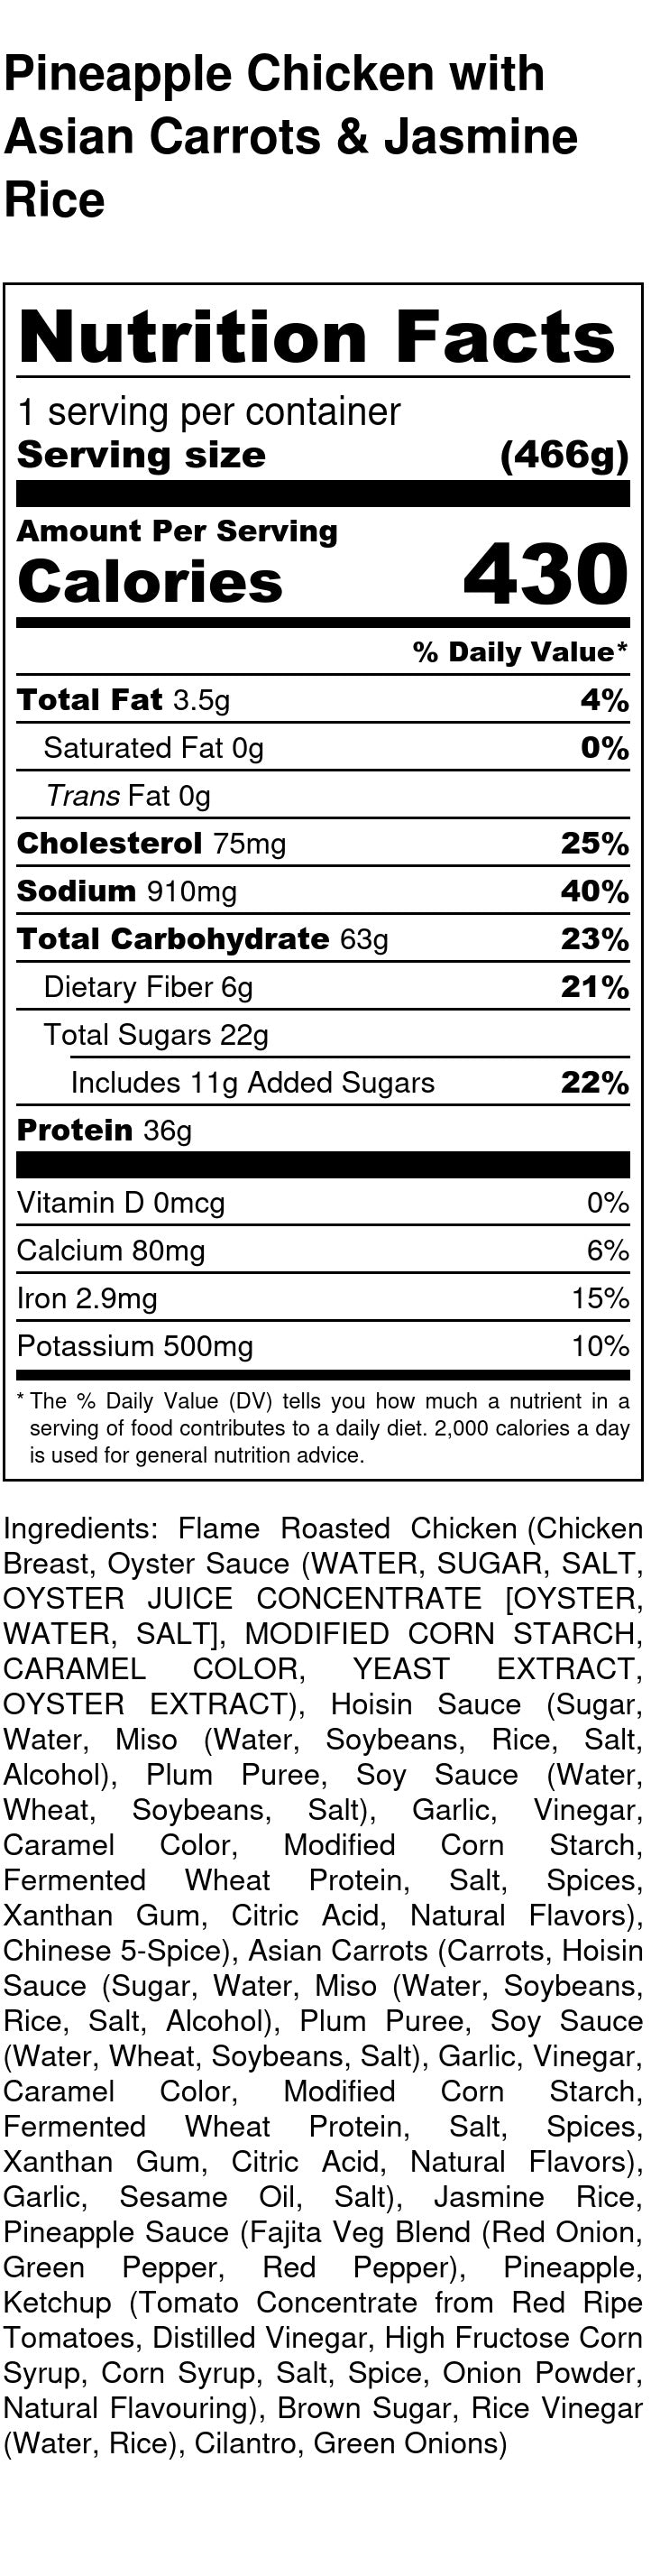 Pineapple Chicken Nutrition Facts